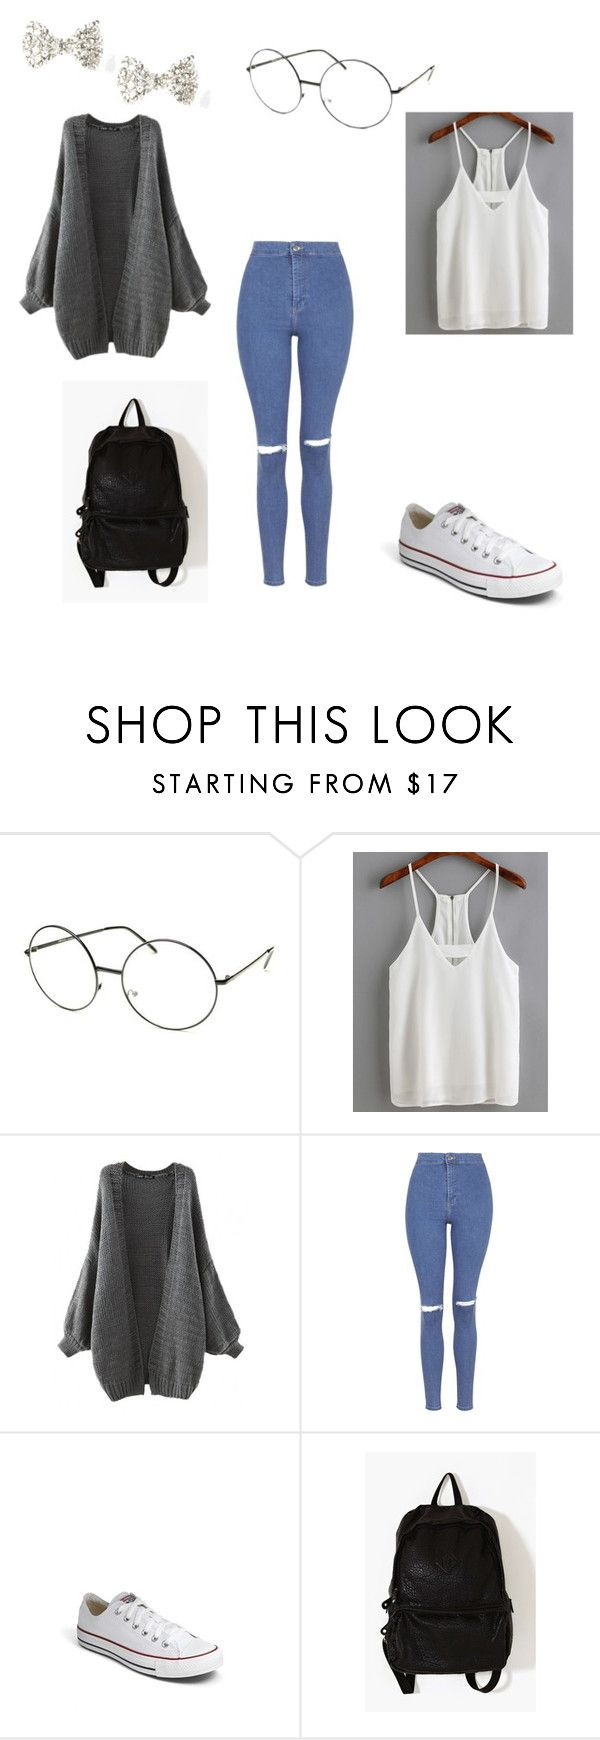 Class Inspo by kaeanita on Polyvore featuring Topshop, Converse, 7 Chi, women's clothing, women's fashion, women, female, woman, misses and juniors